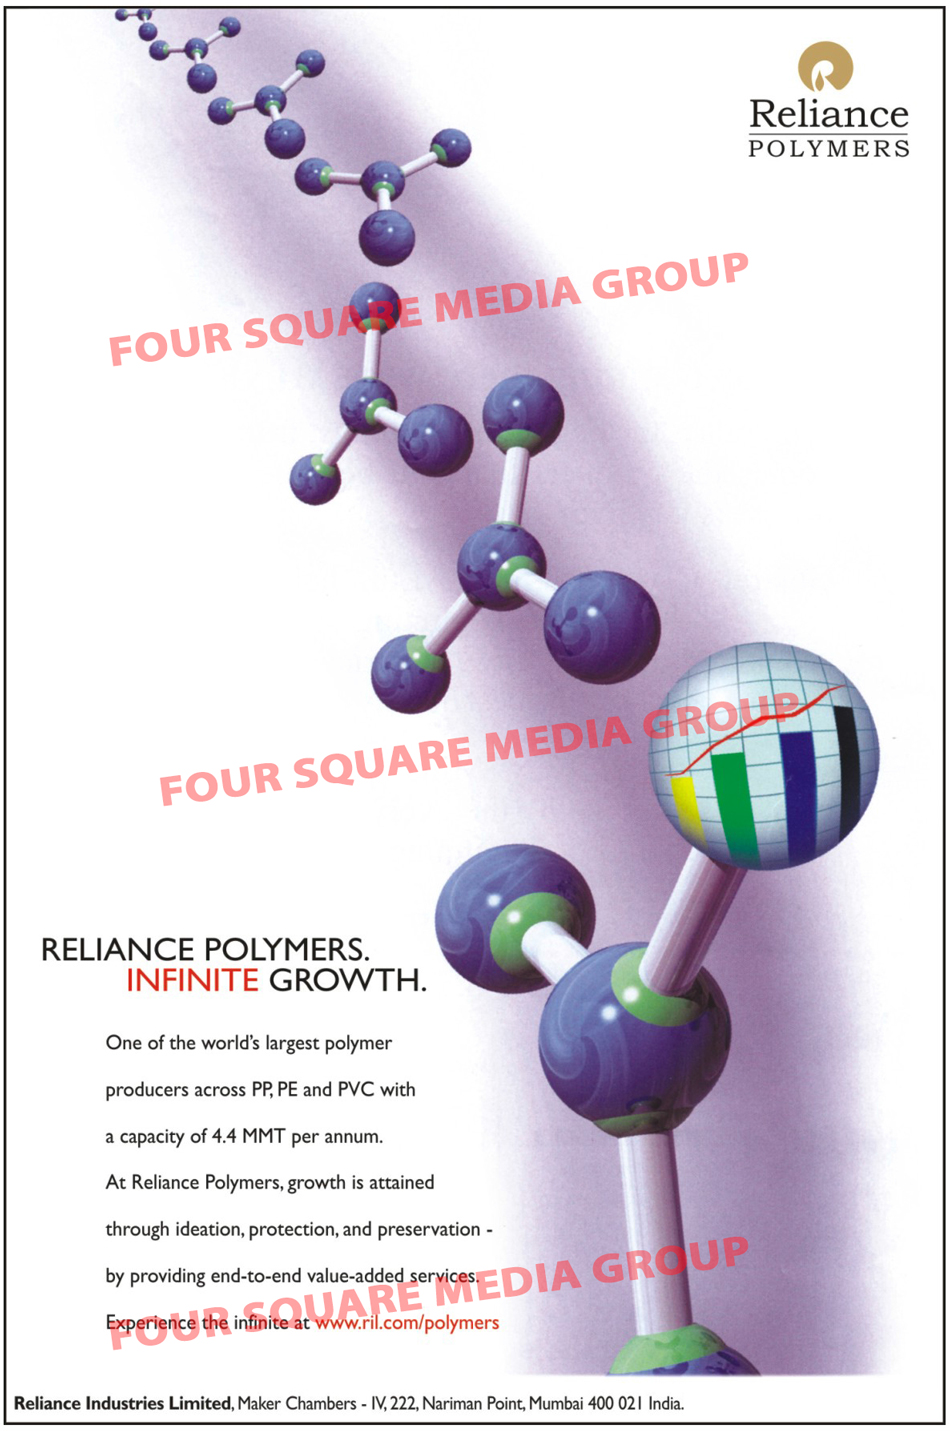 PP Polymers, PE Polymers, PVC Polymers